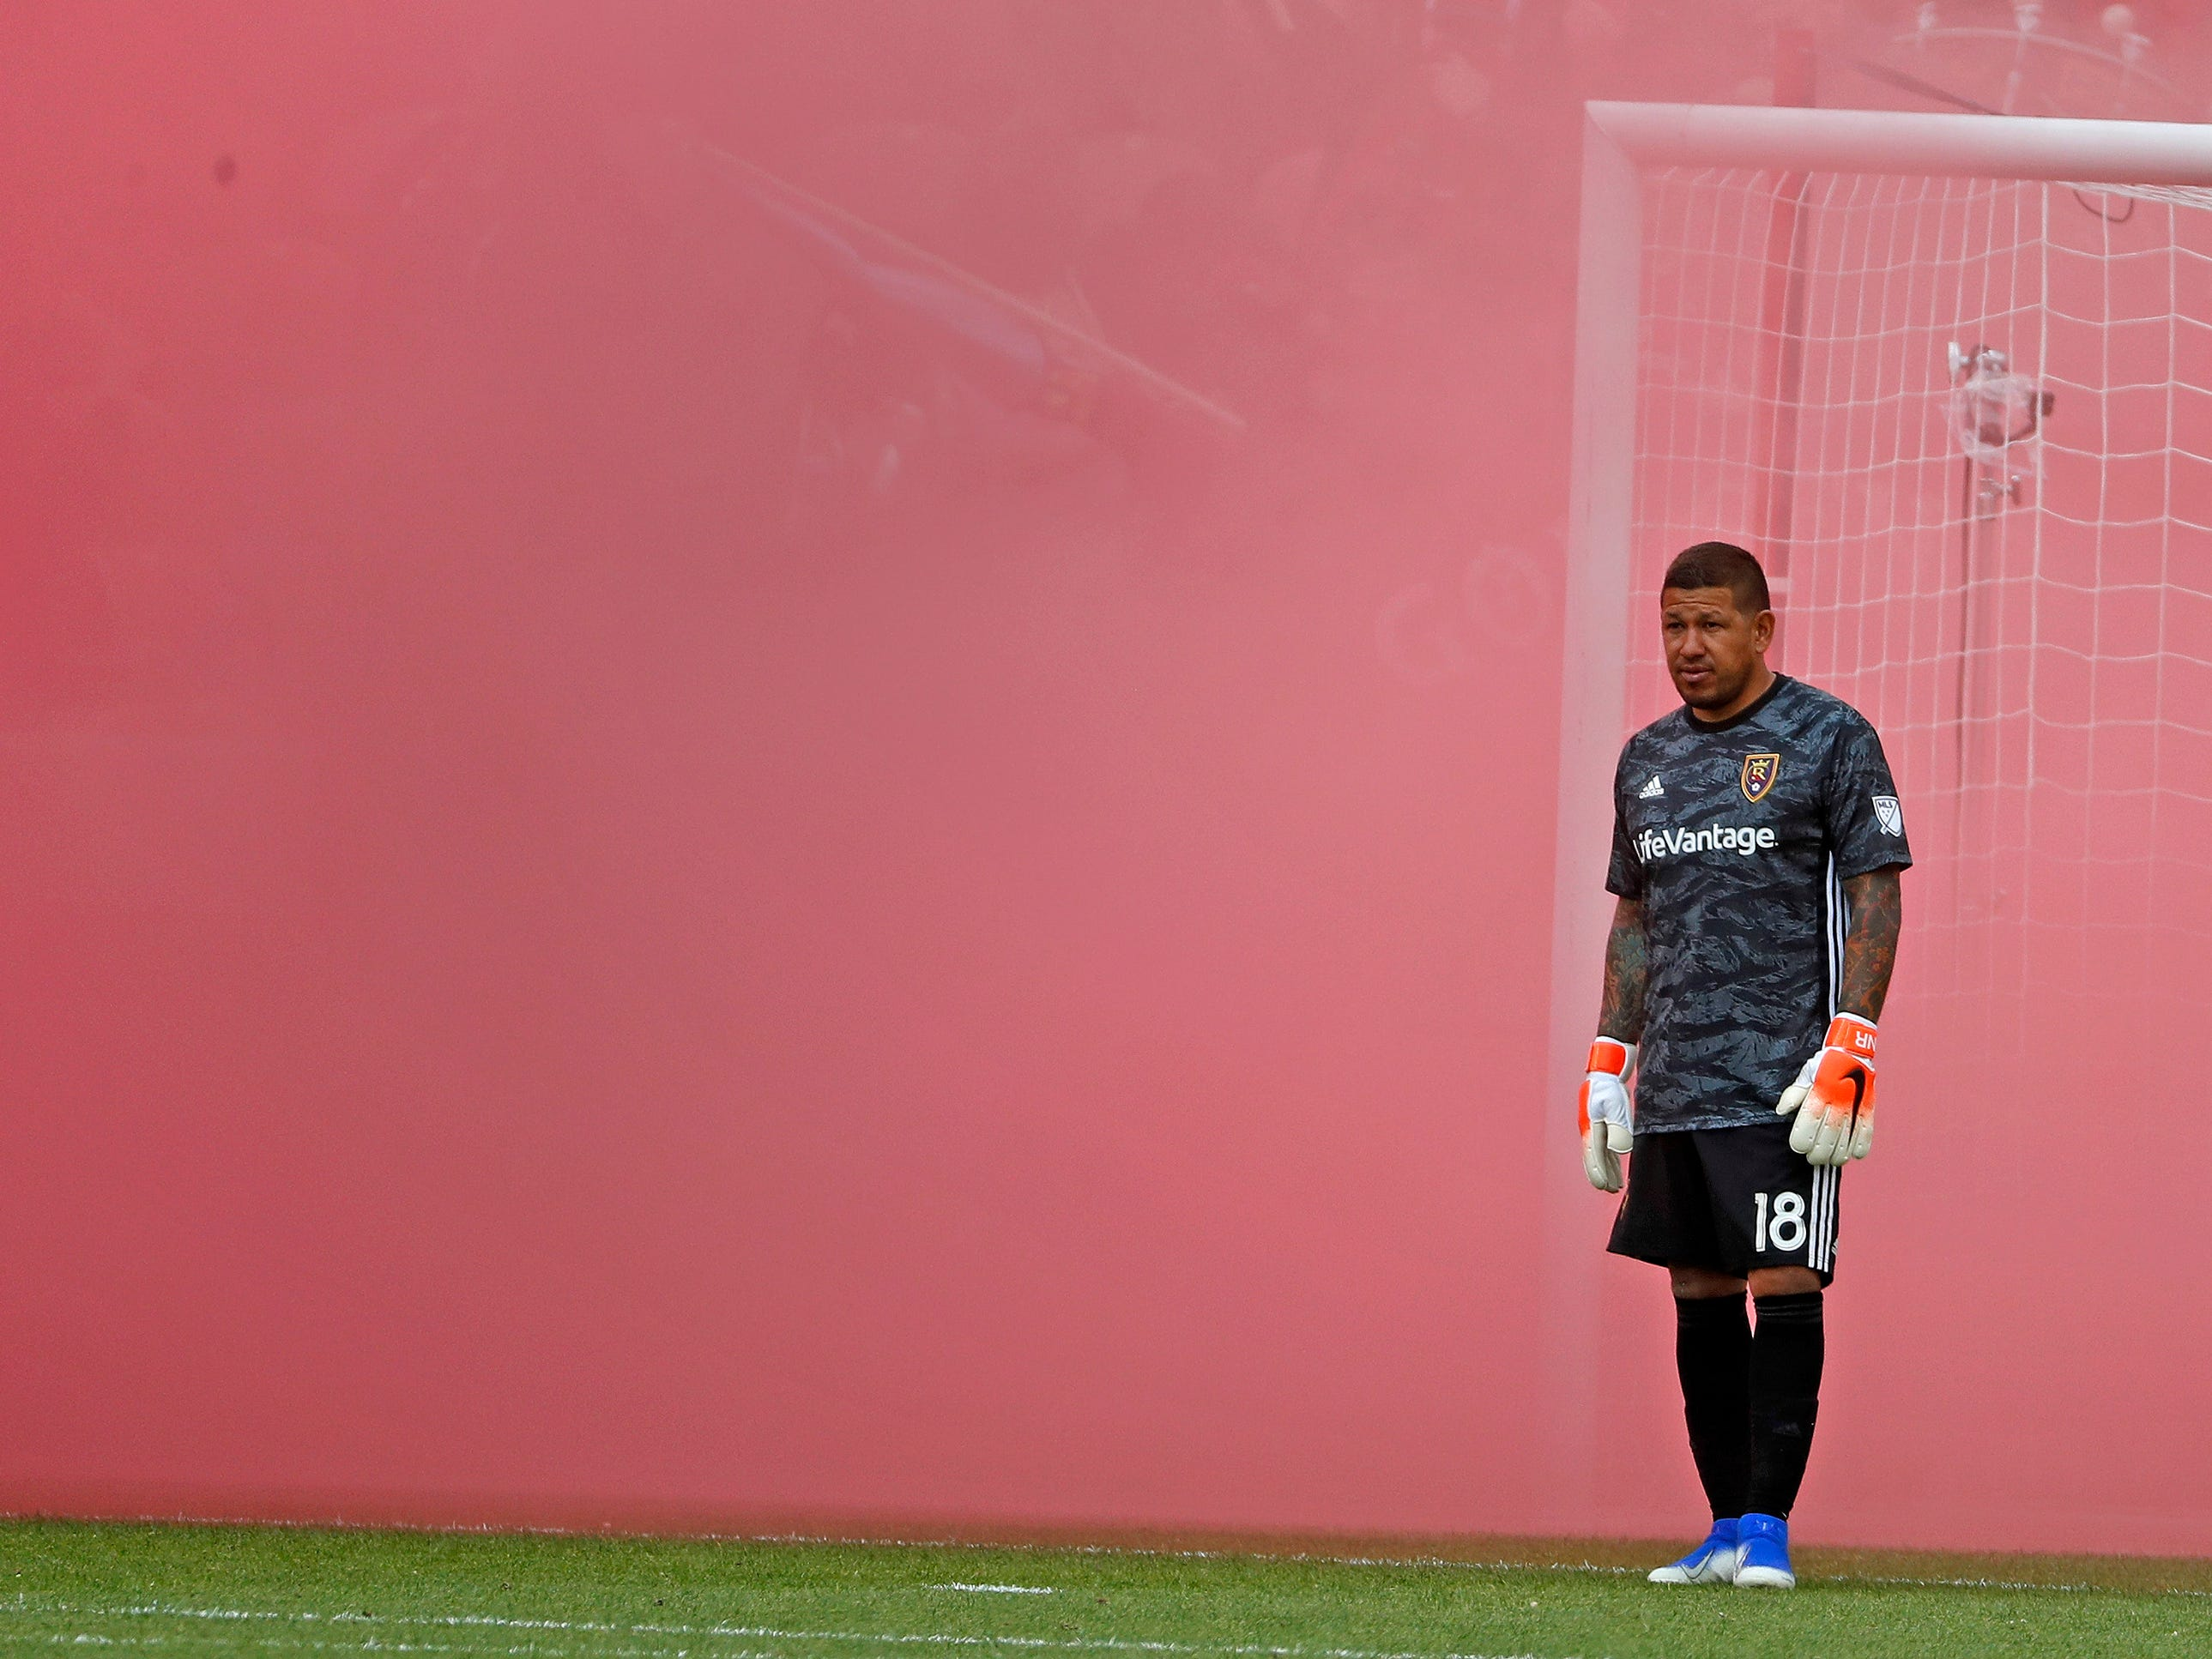 May 18: Real Salt Lake goalkeeper Nick Rimando stands in a cloud of smoke after his teammate forward Jefferson Savarino scored in the second half against the Toronto FC at Rio Tinto Stadium. Real Salt Lake won the game, 3-0.